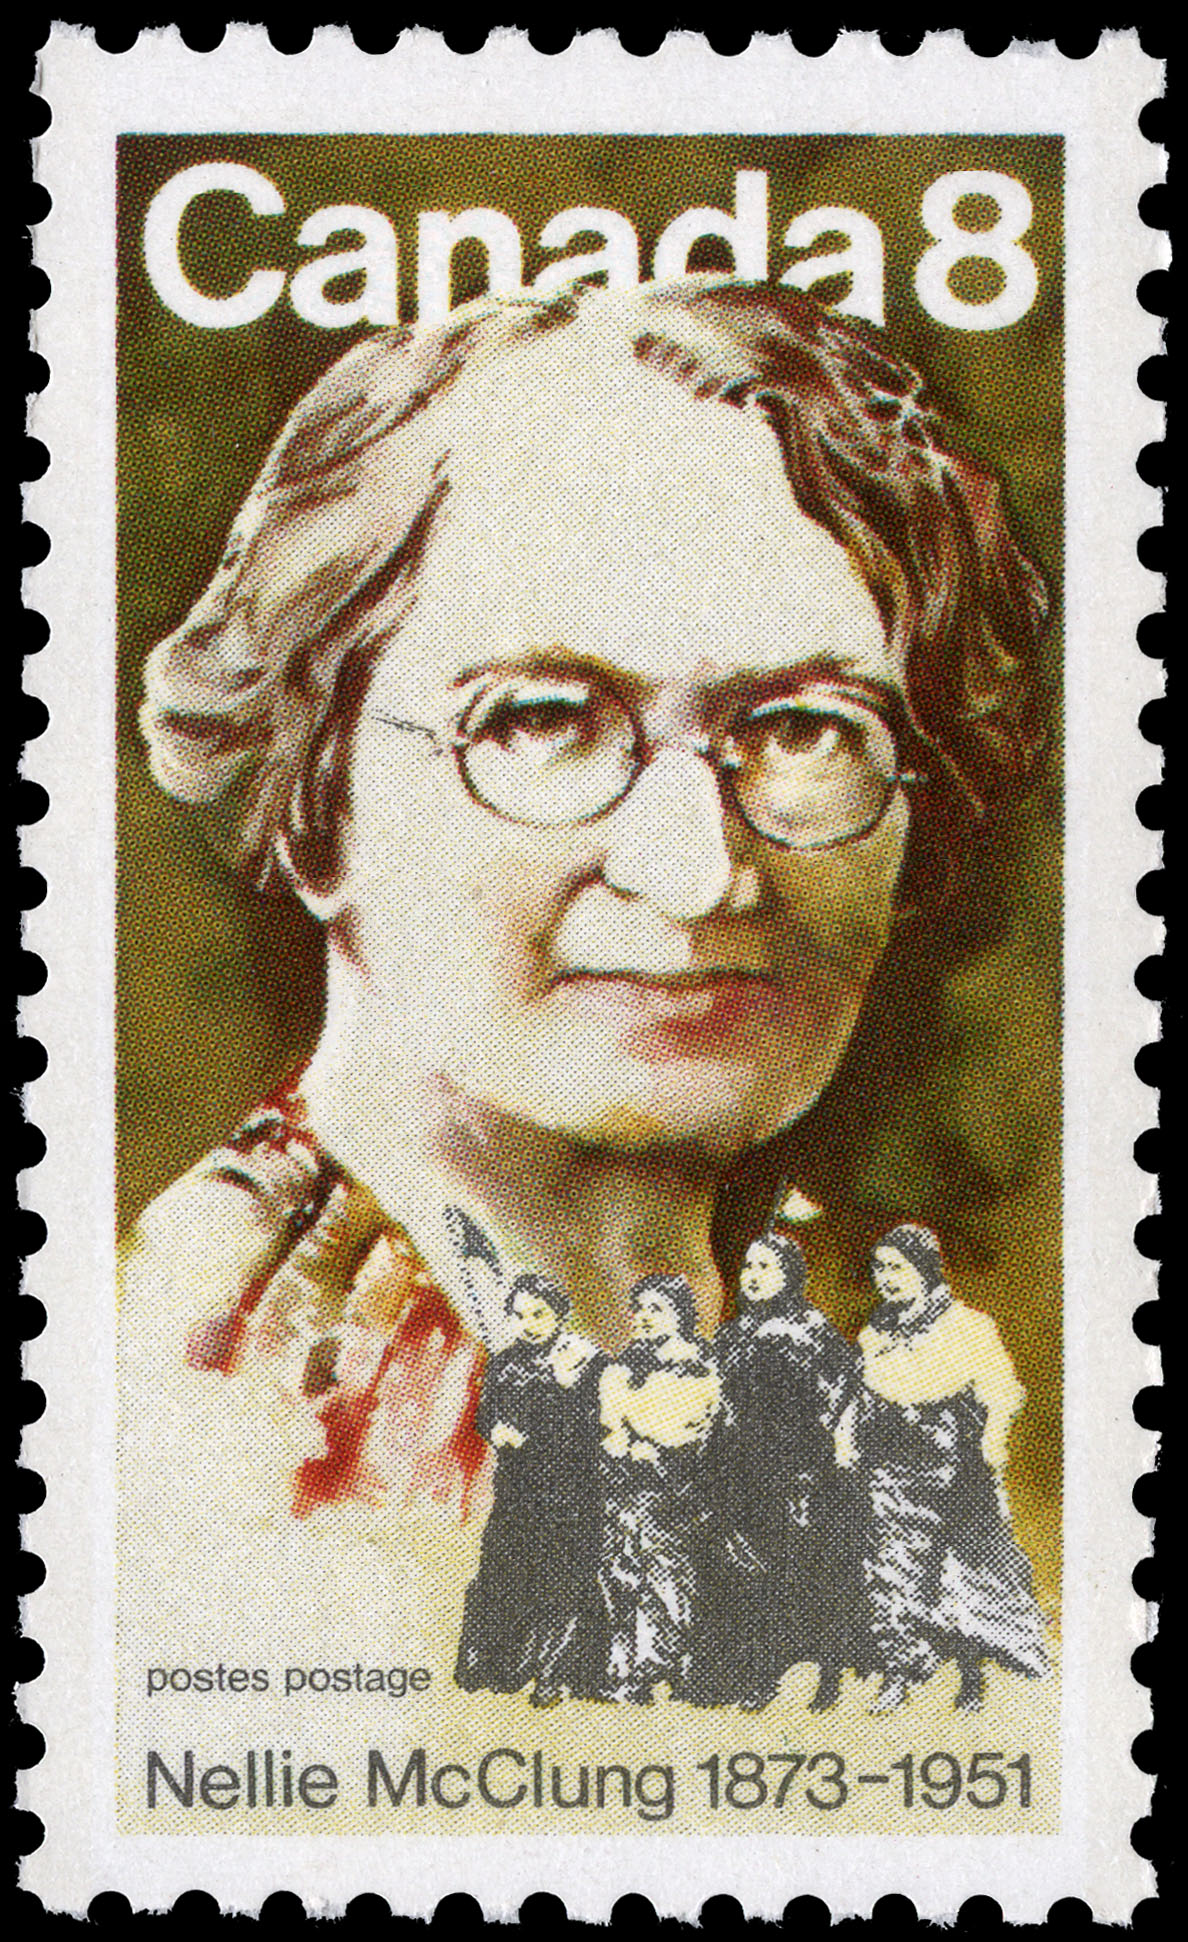 Nellie McClung, 1873-1951 Canada Postage Stamp